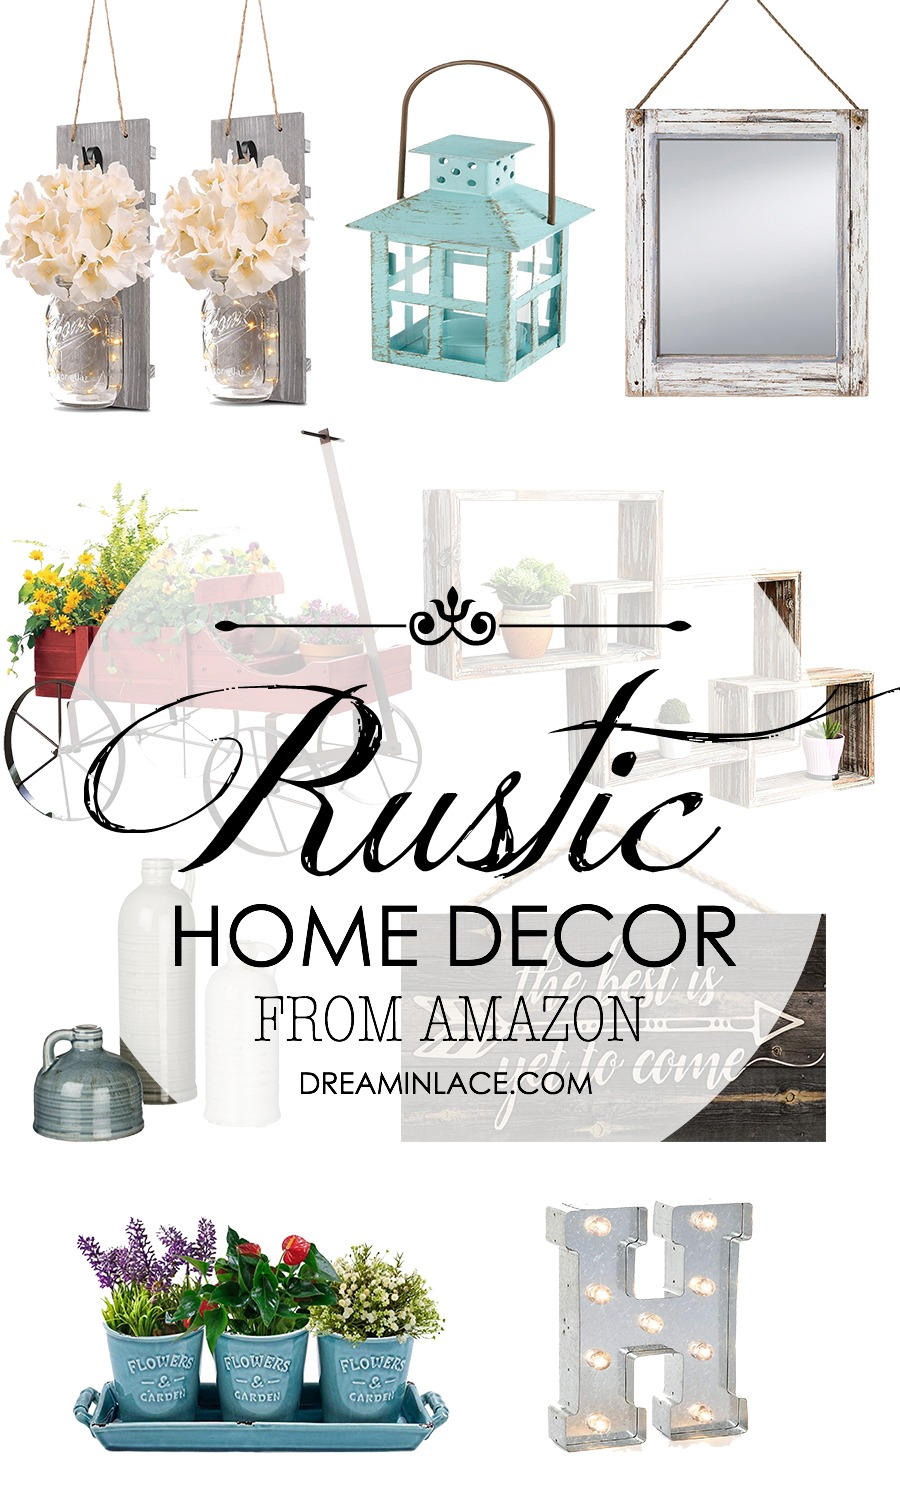 Rustic Home Decor Picks from Amazon I DreaminLace.com #HomeDecor #Rustic #AffordableHomeDecor #BudgetDecor